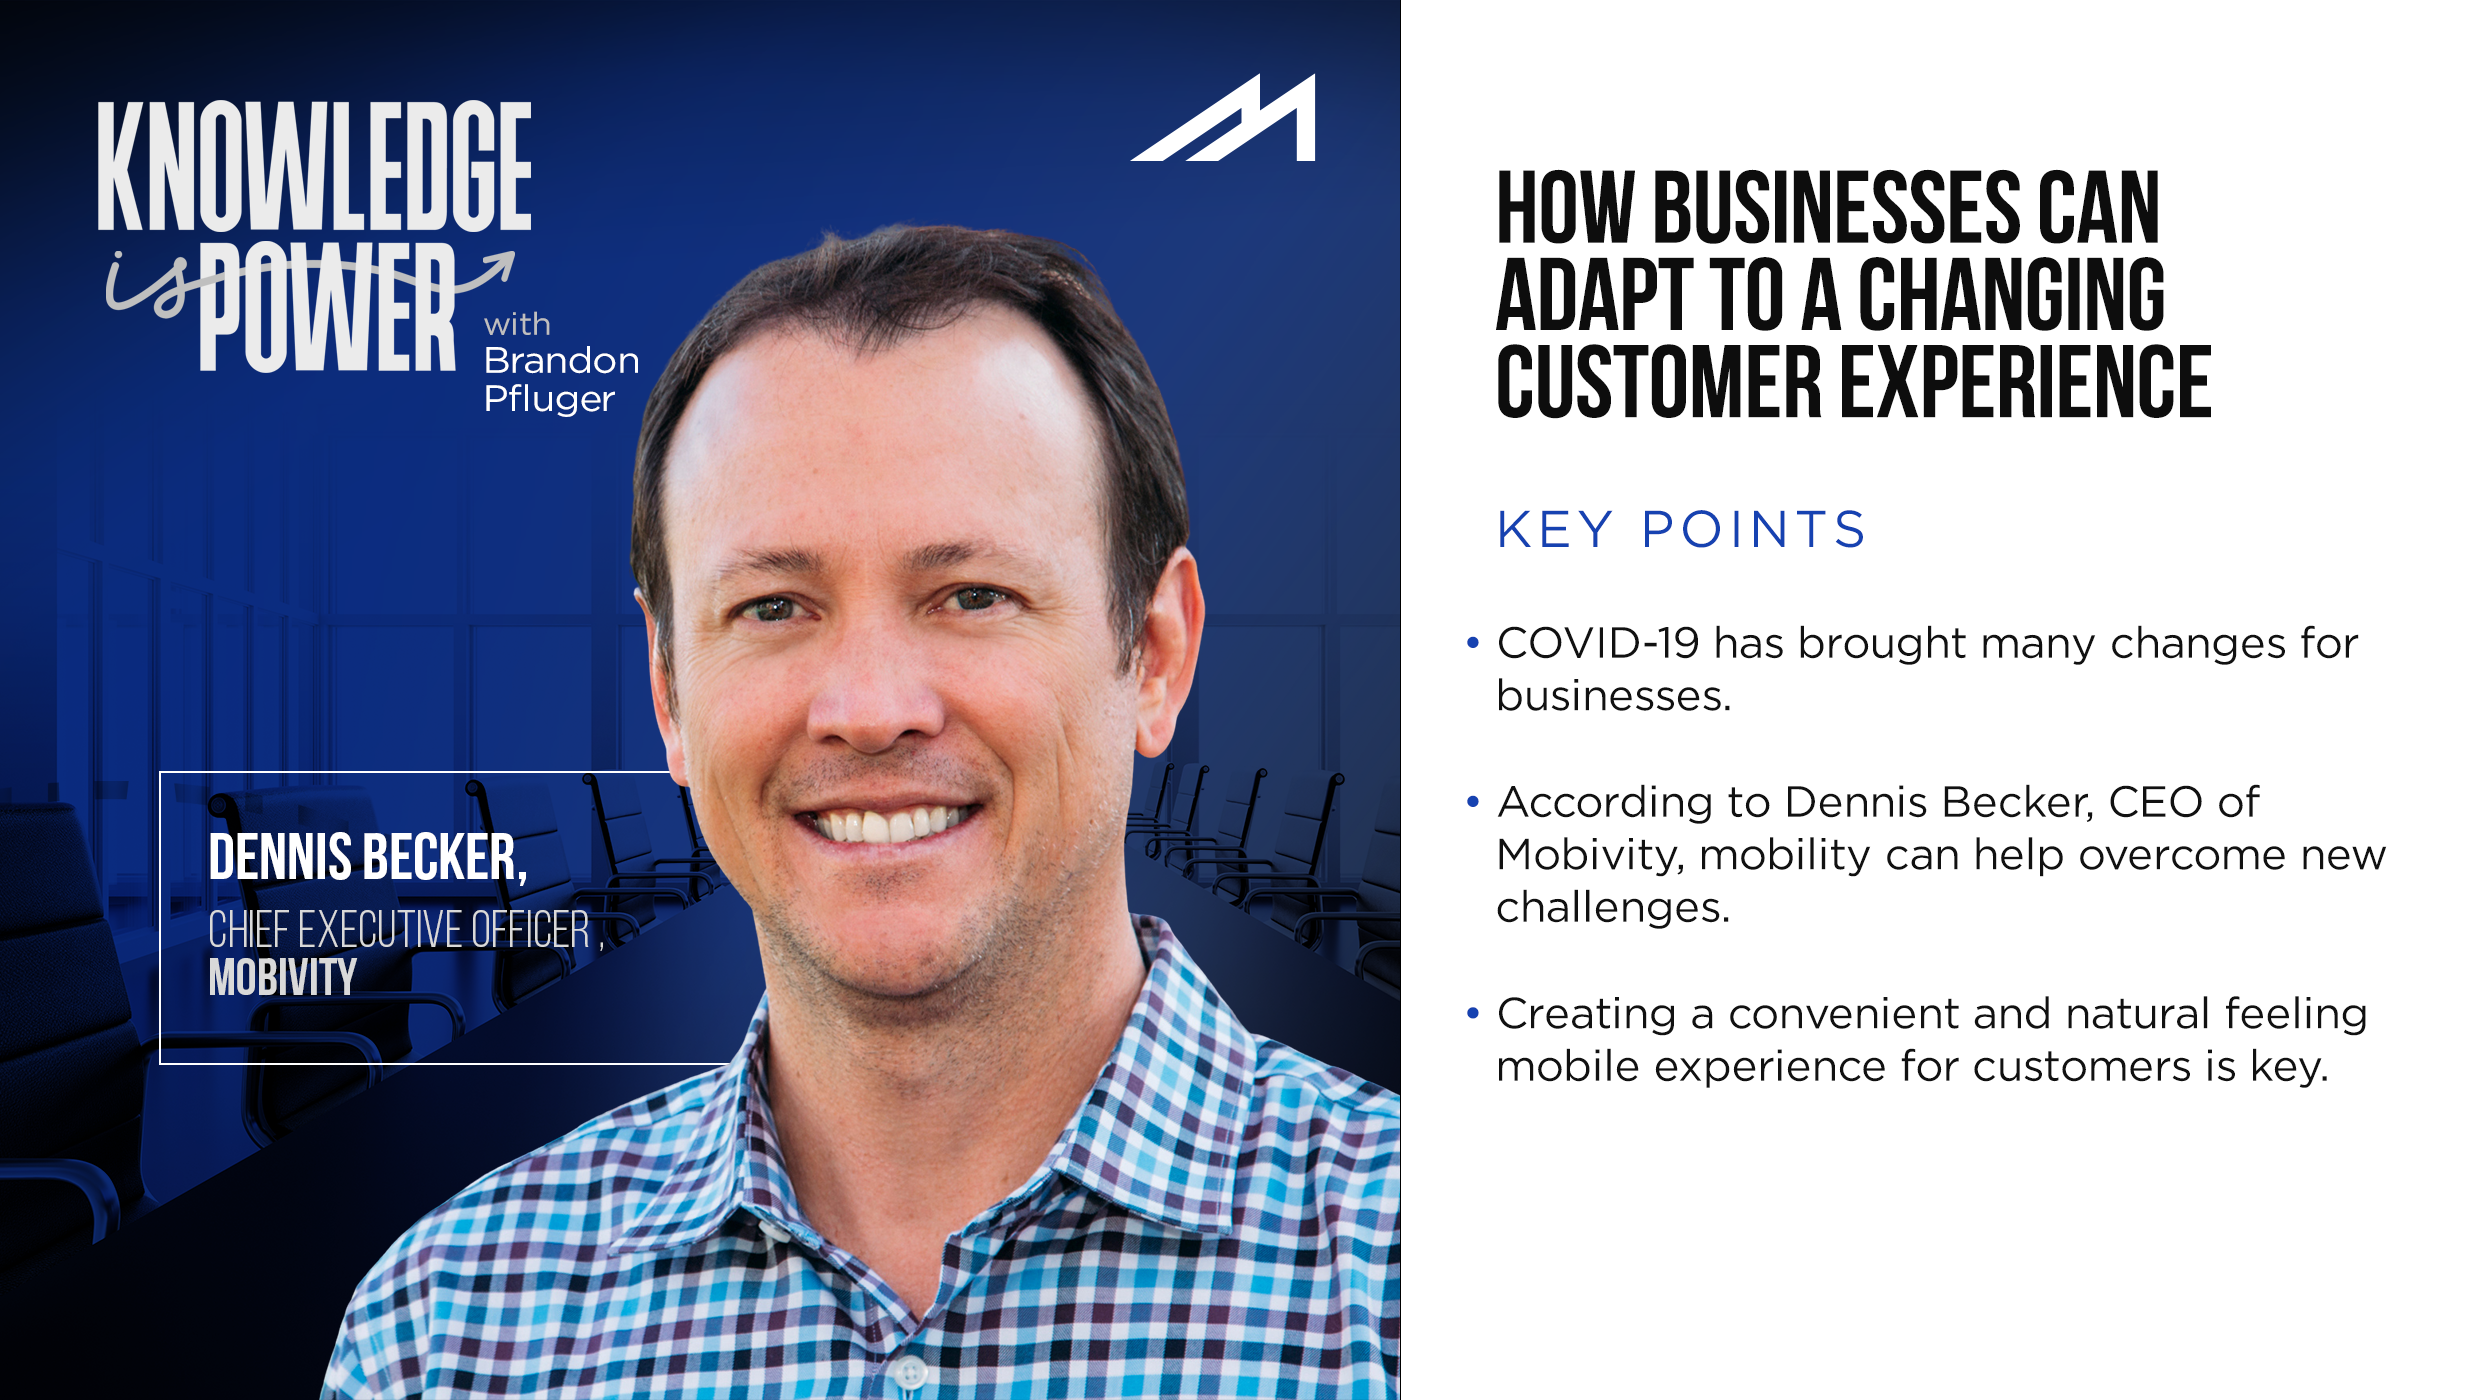 How Businesses Can Adapt to a Changing Customer Experience